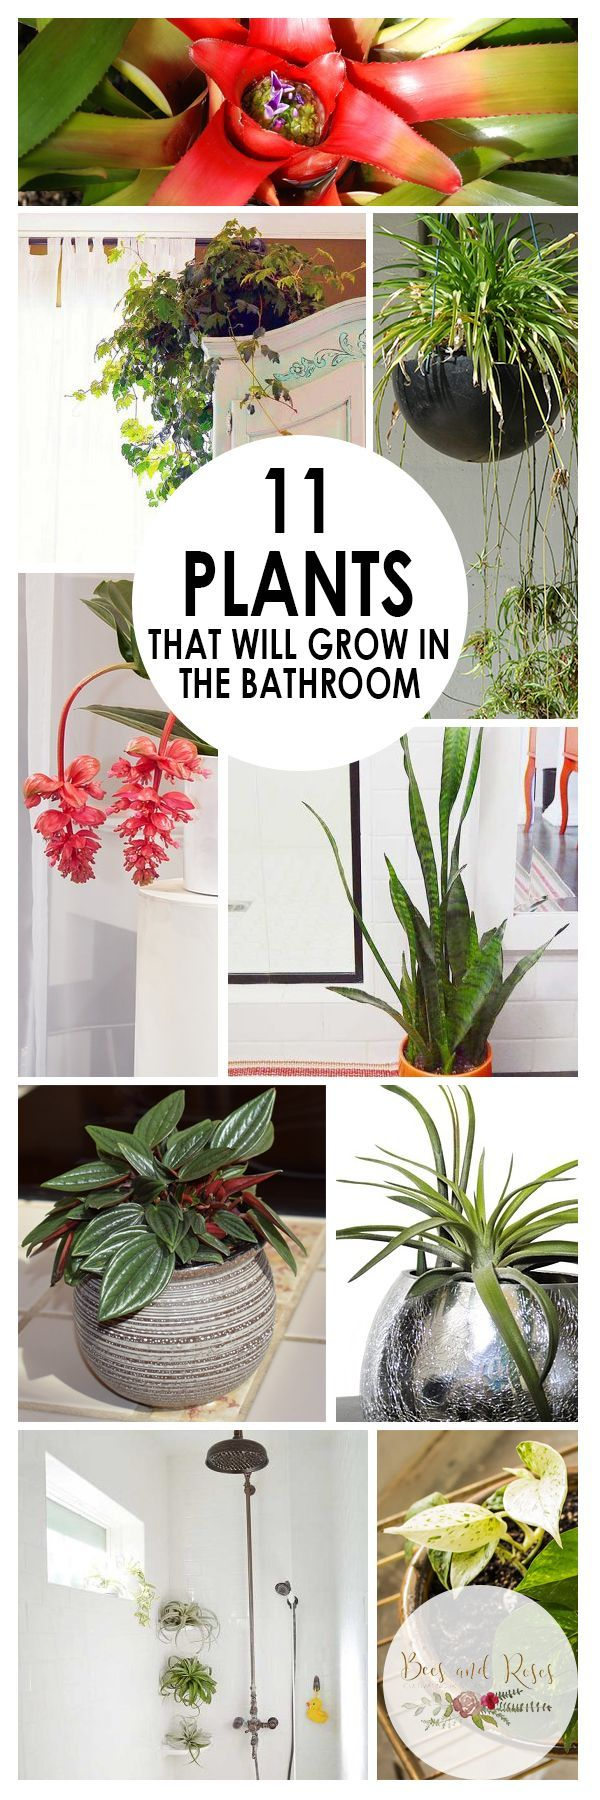 11 easy to grow bathroom plants page 13 of 13 planters bathroom plants plants house. Black Bedroom Furniture Sets. Home Design Ideas